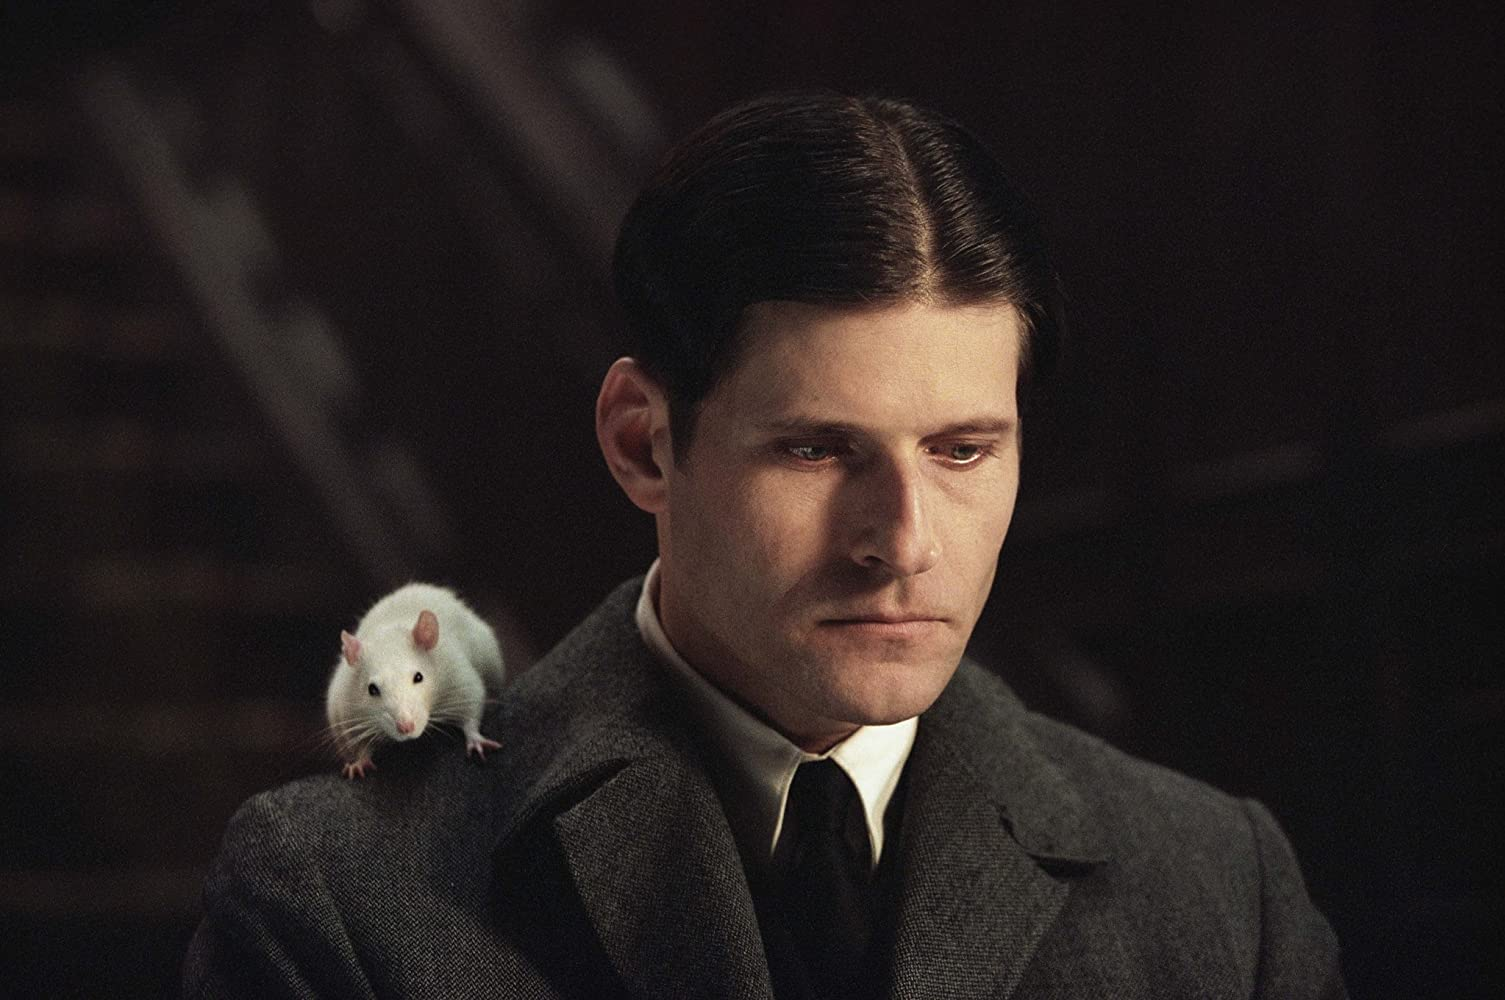 Crispin Glover in Willard 2003